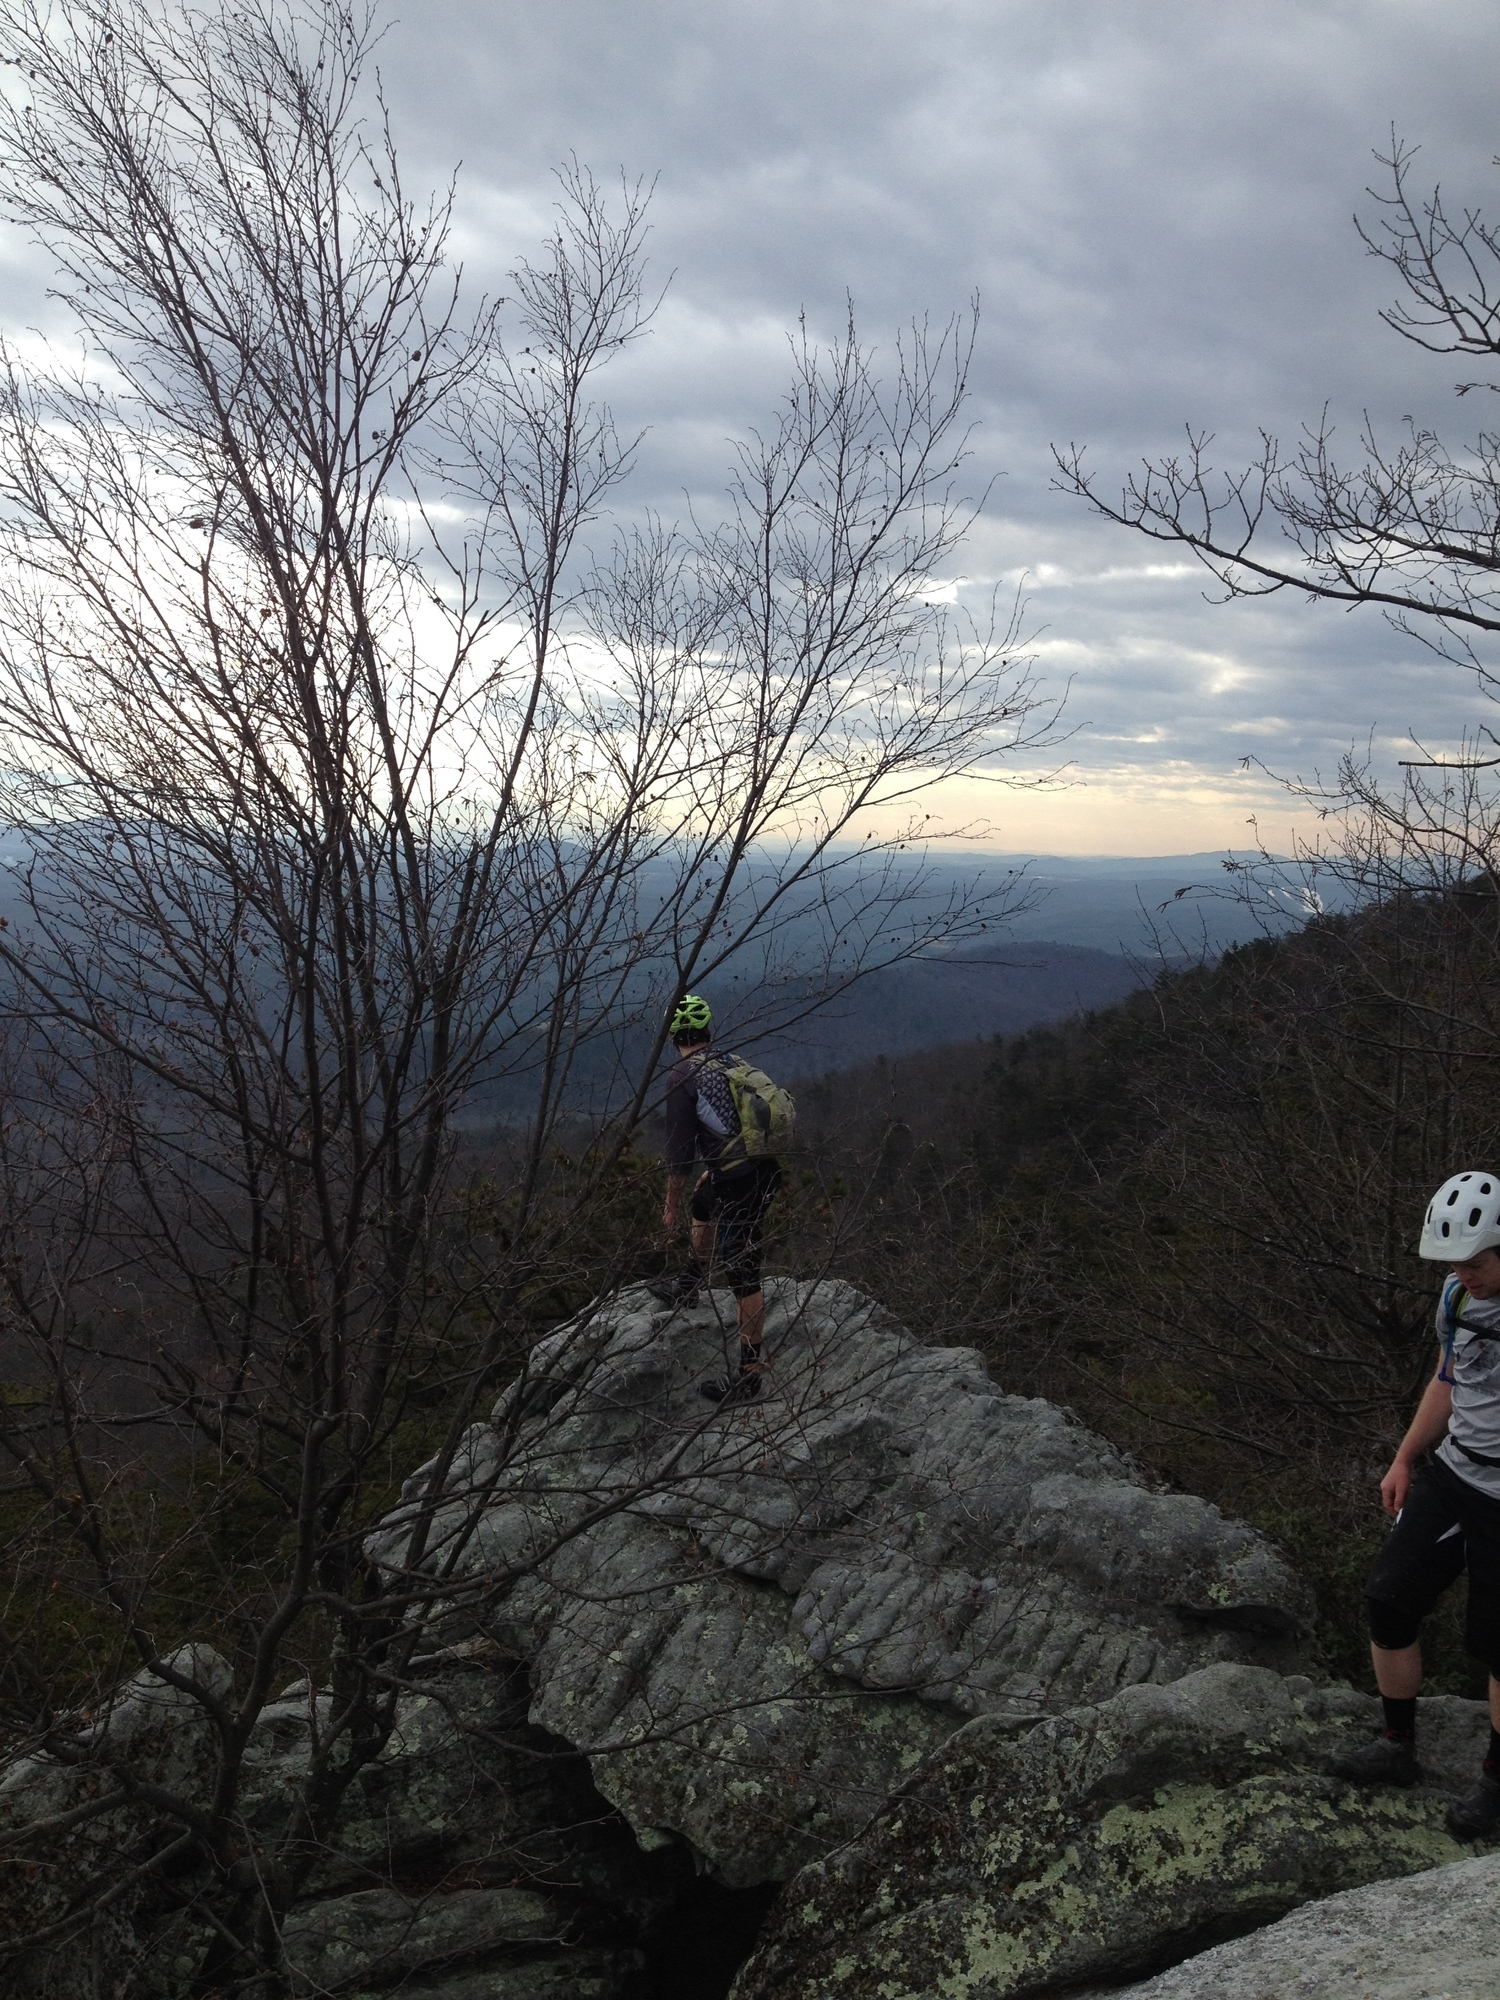 Collin Vento and Chase Lyne exploring one of the vertical rock spines jutting out of the mountain.